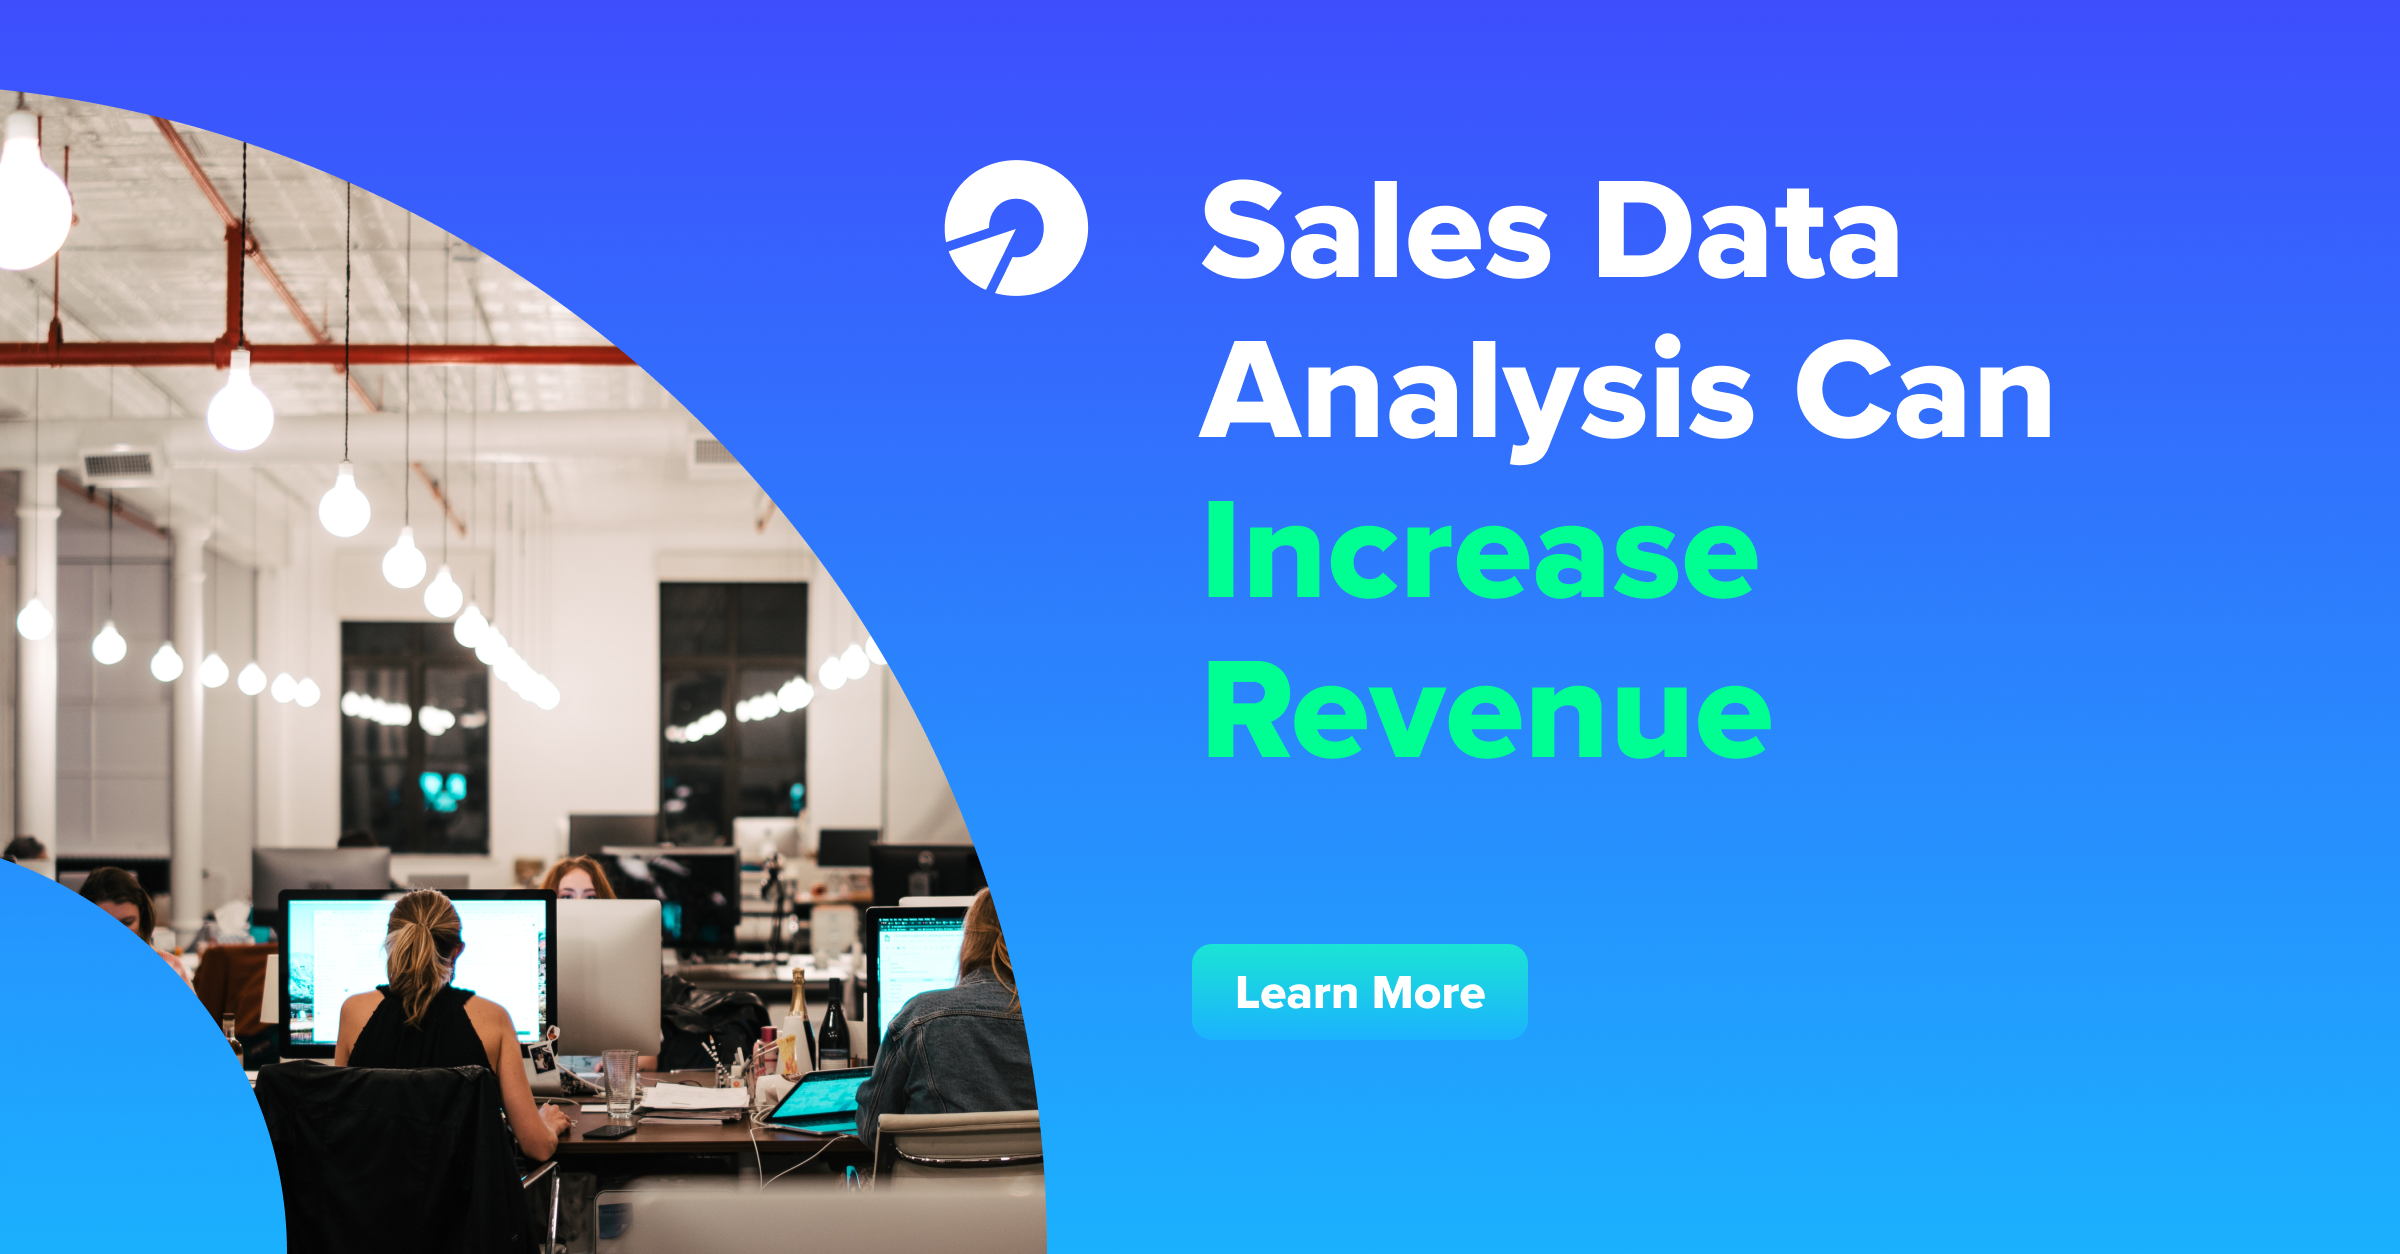 Sales Data Analysis Can Increase Revenue